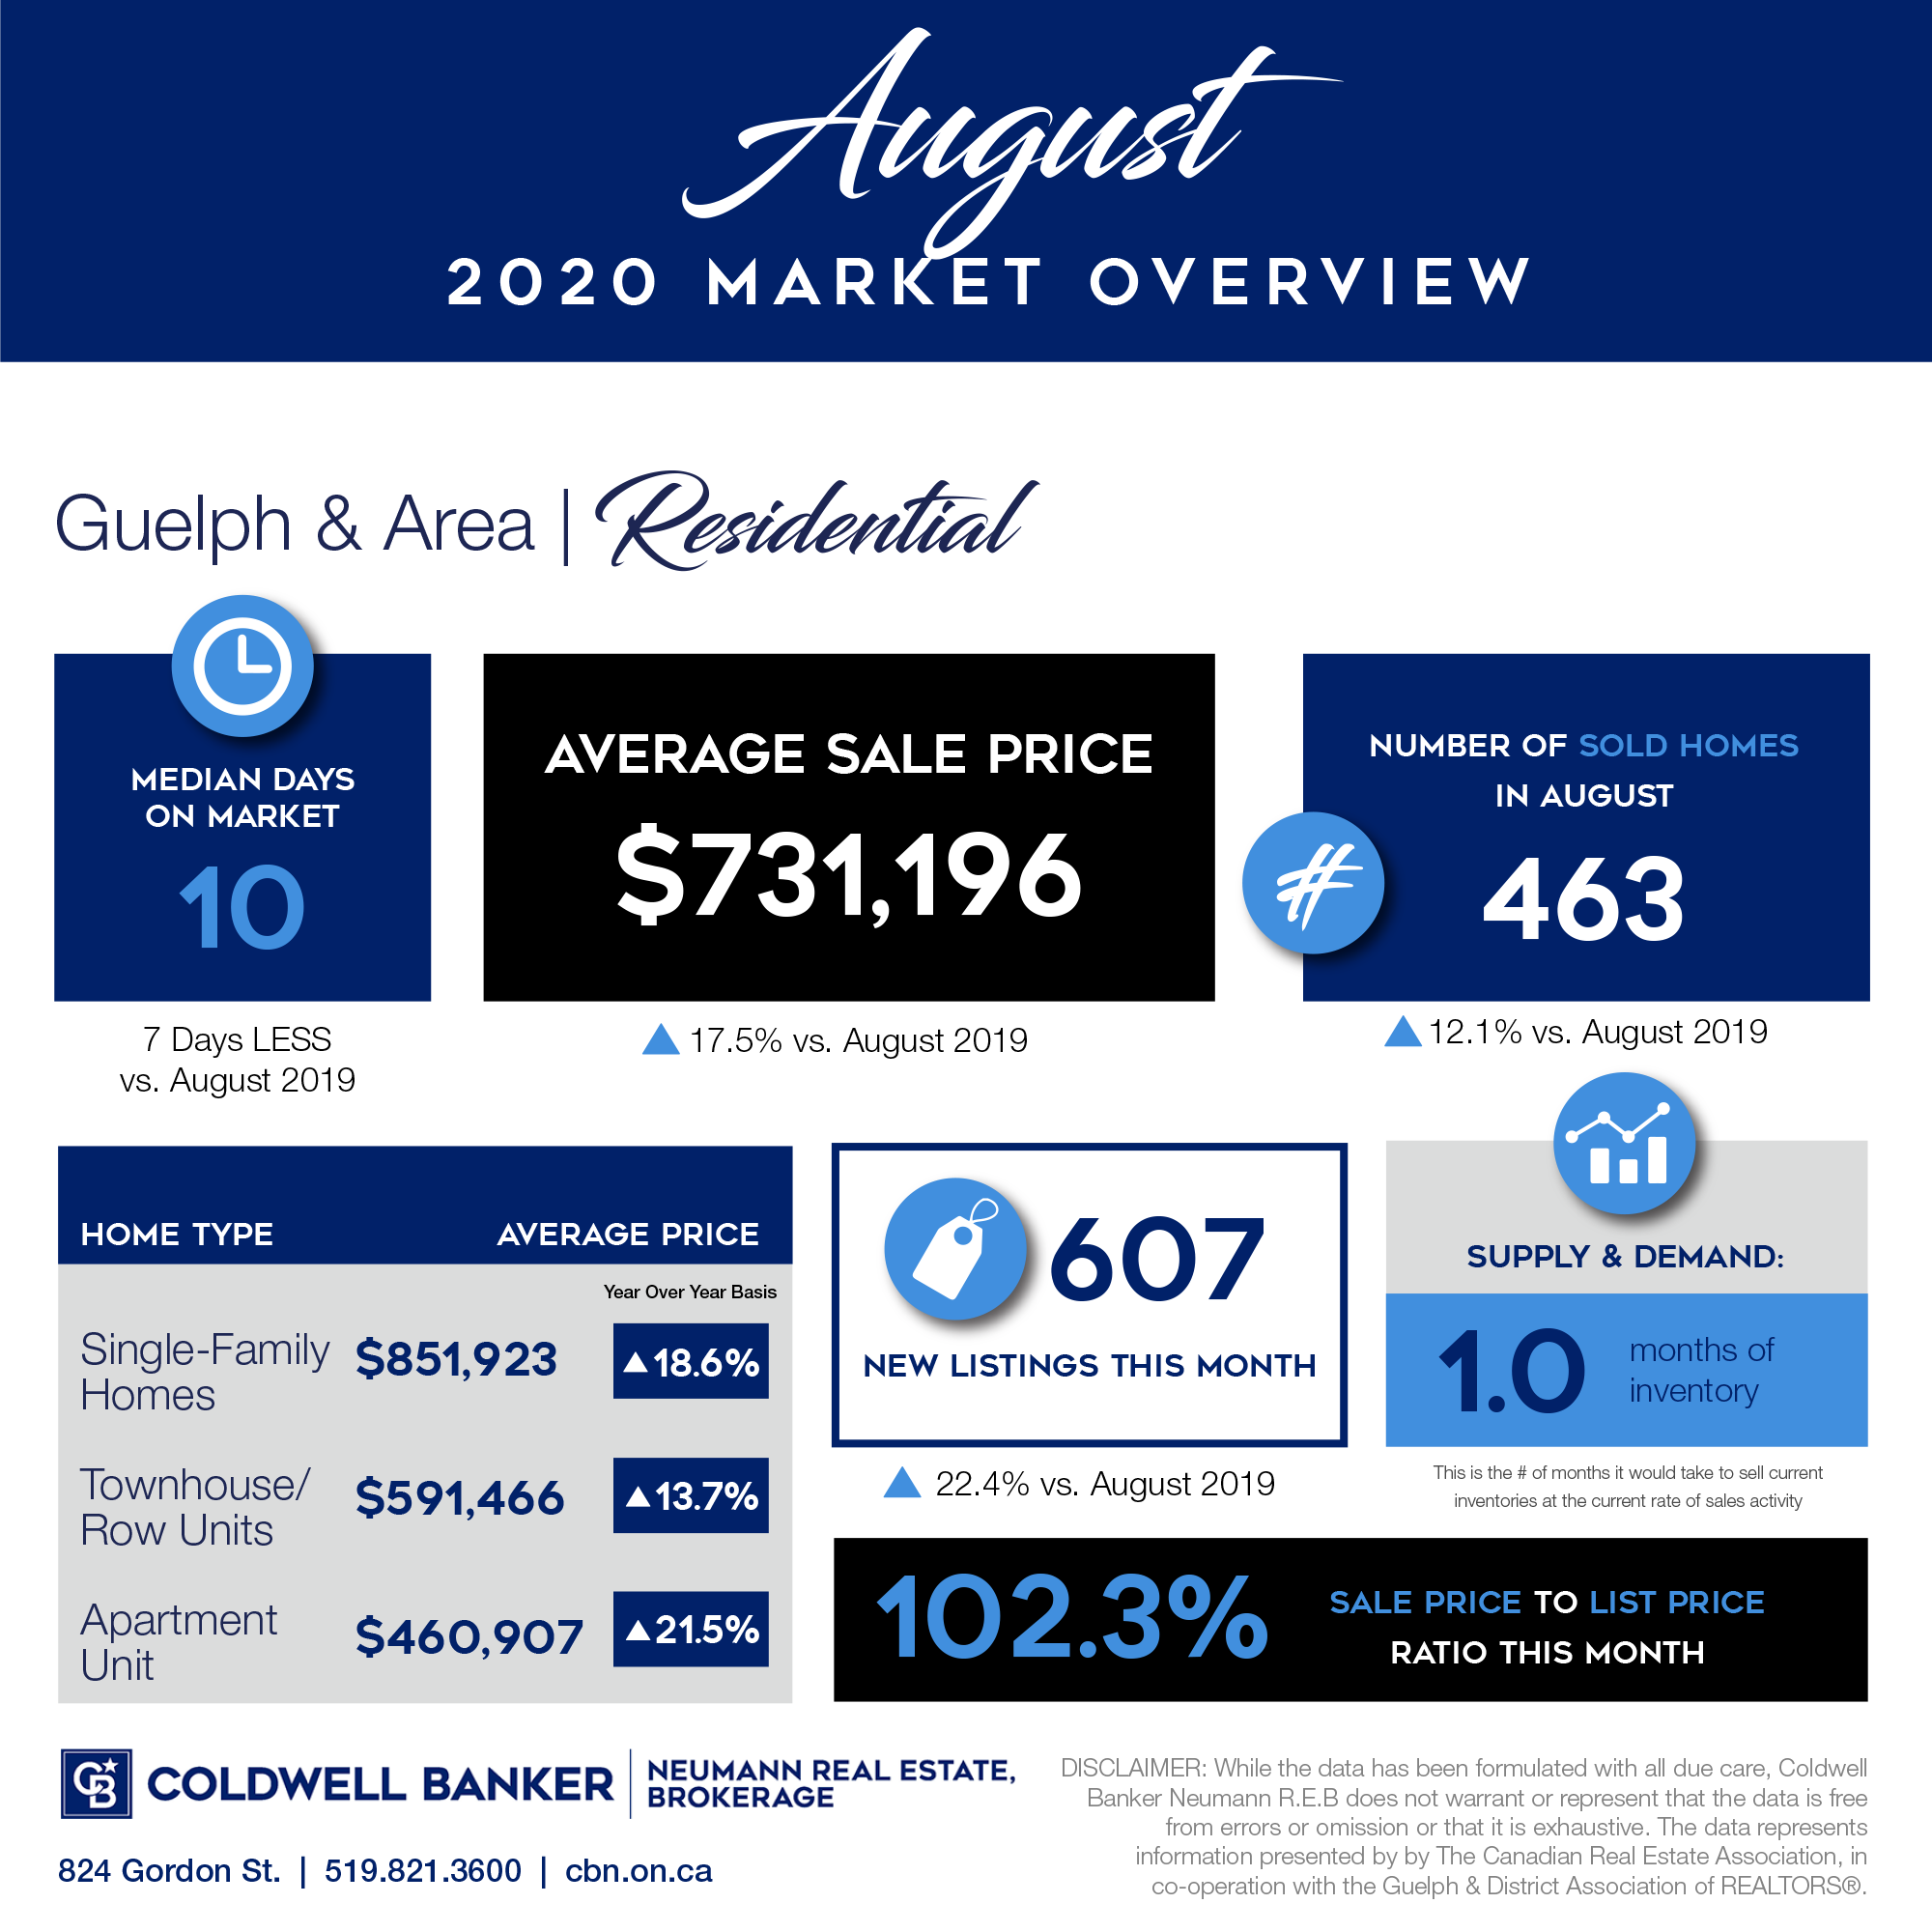 August 2020 market report for Guelph and the surrounding area.